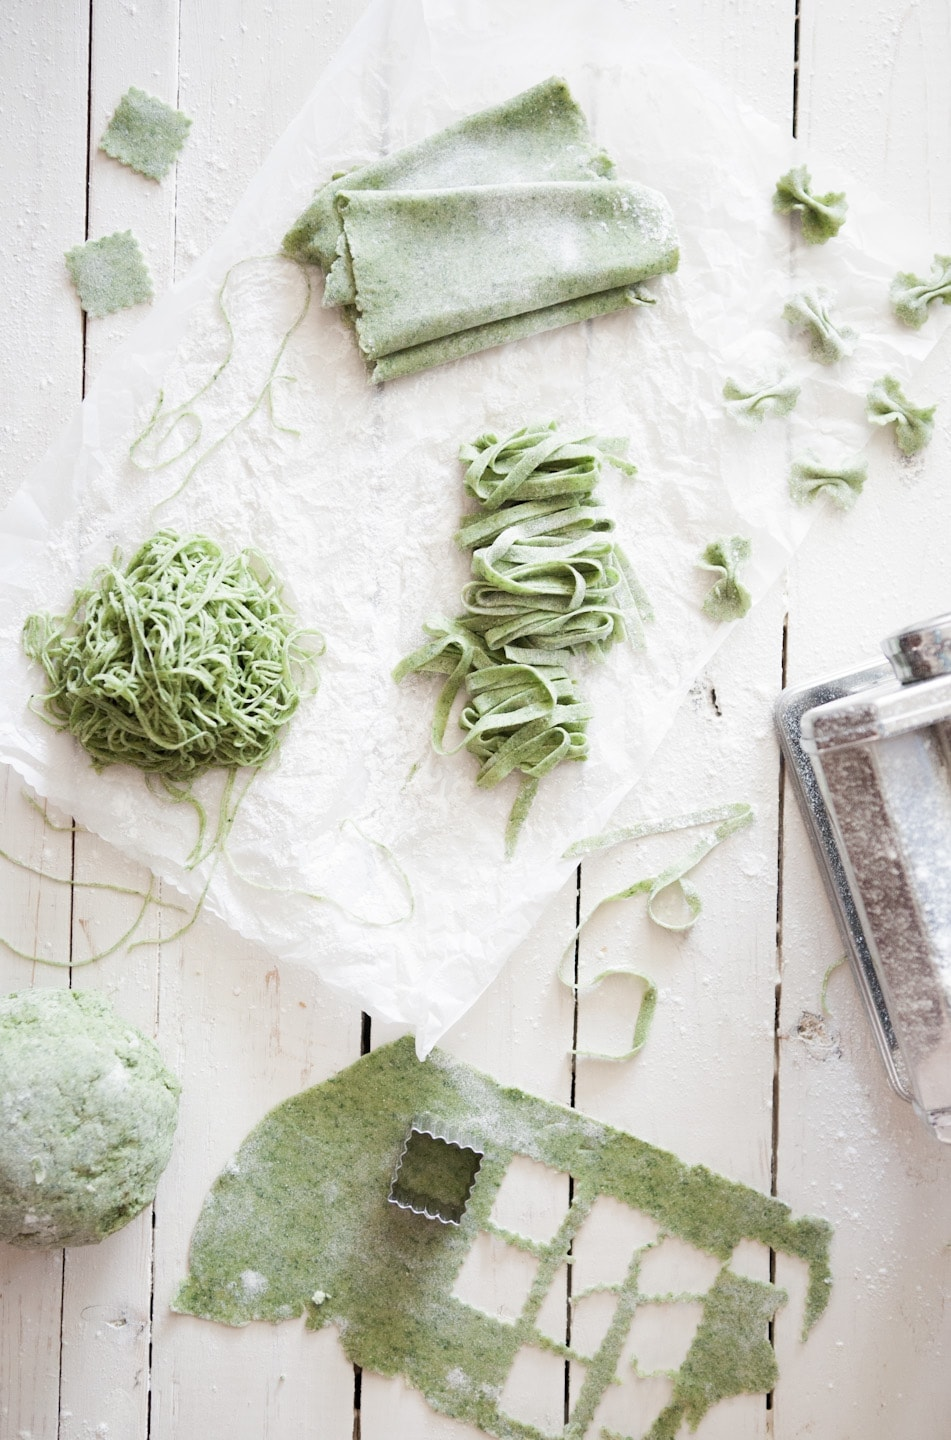 Homemade Spinach Pasta Dough Recipe